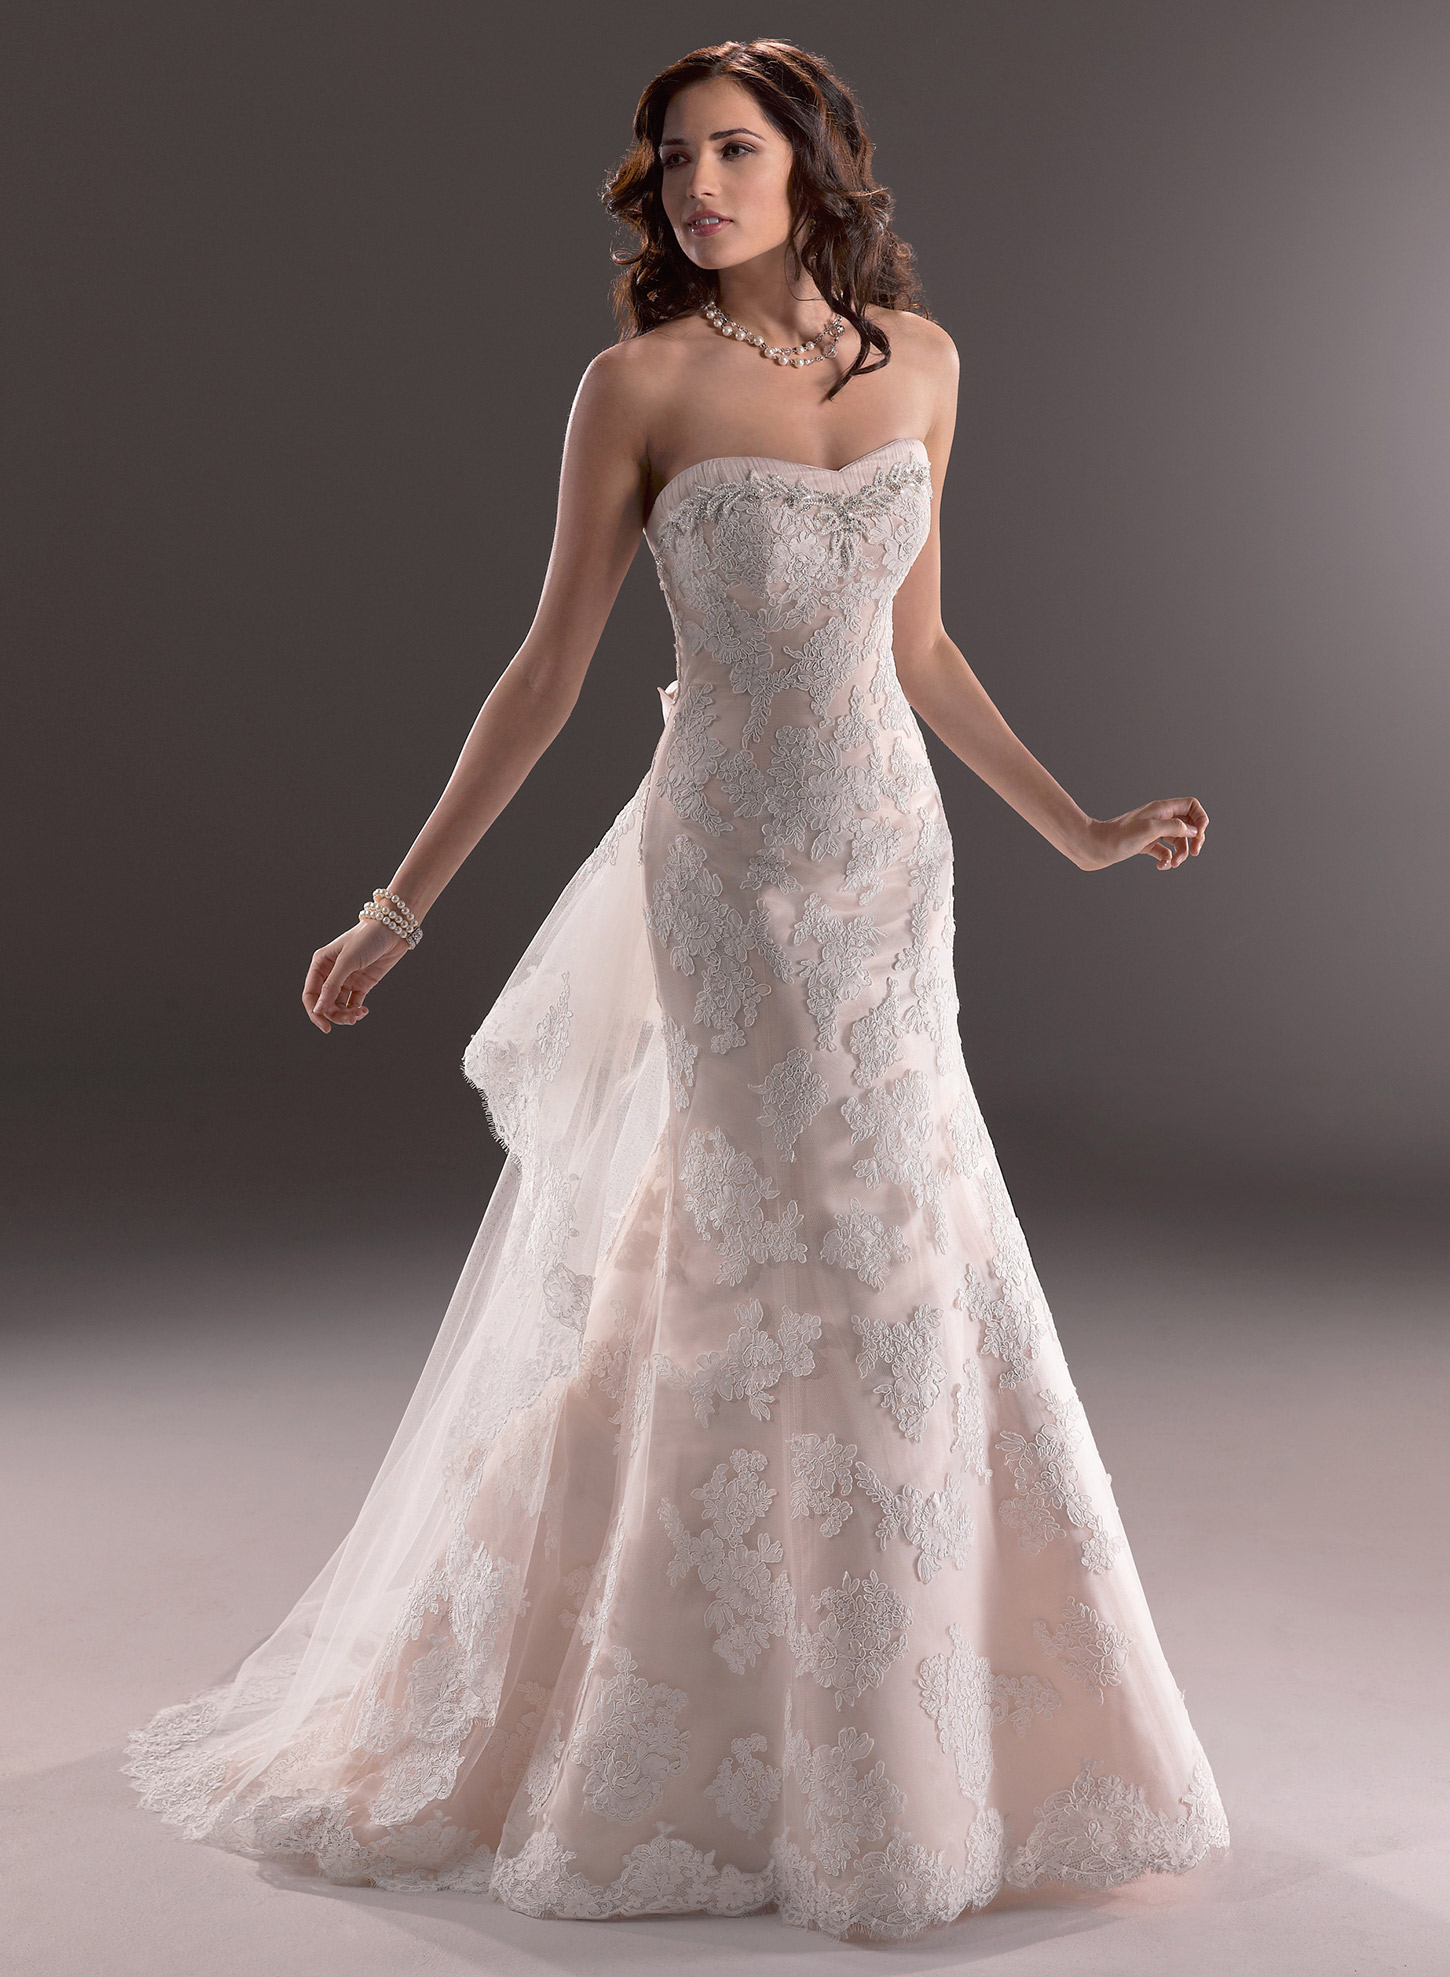 New Maggie Sottero arrival: Athena - Miss Bush Blog